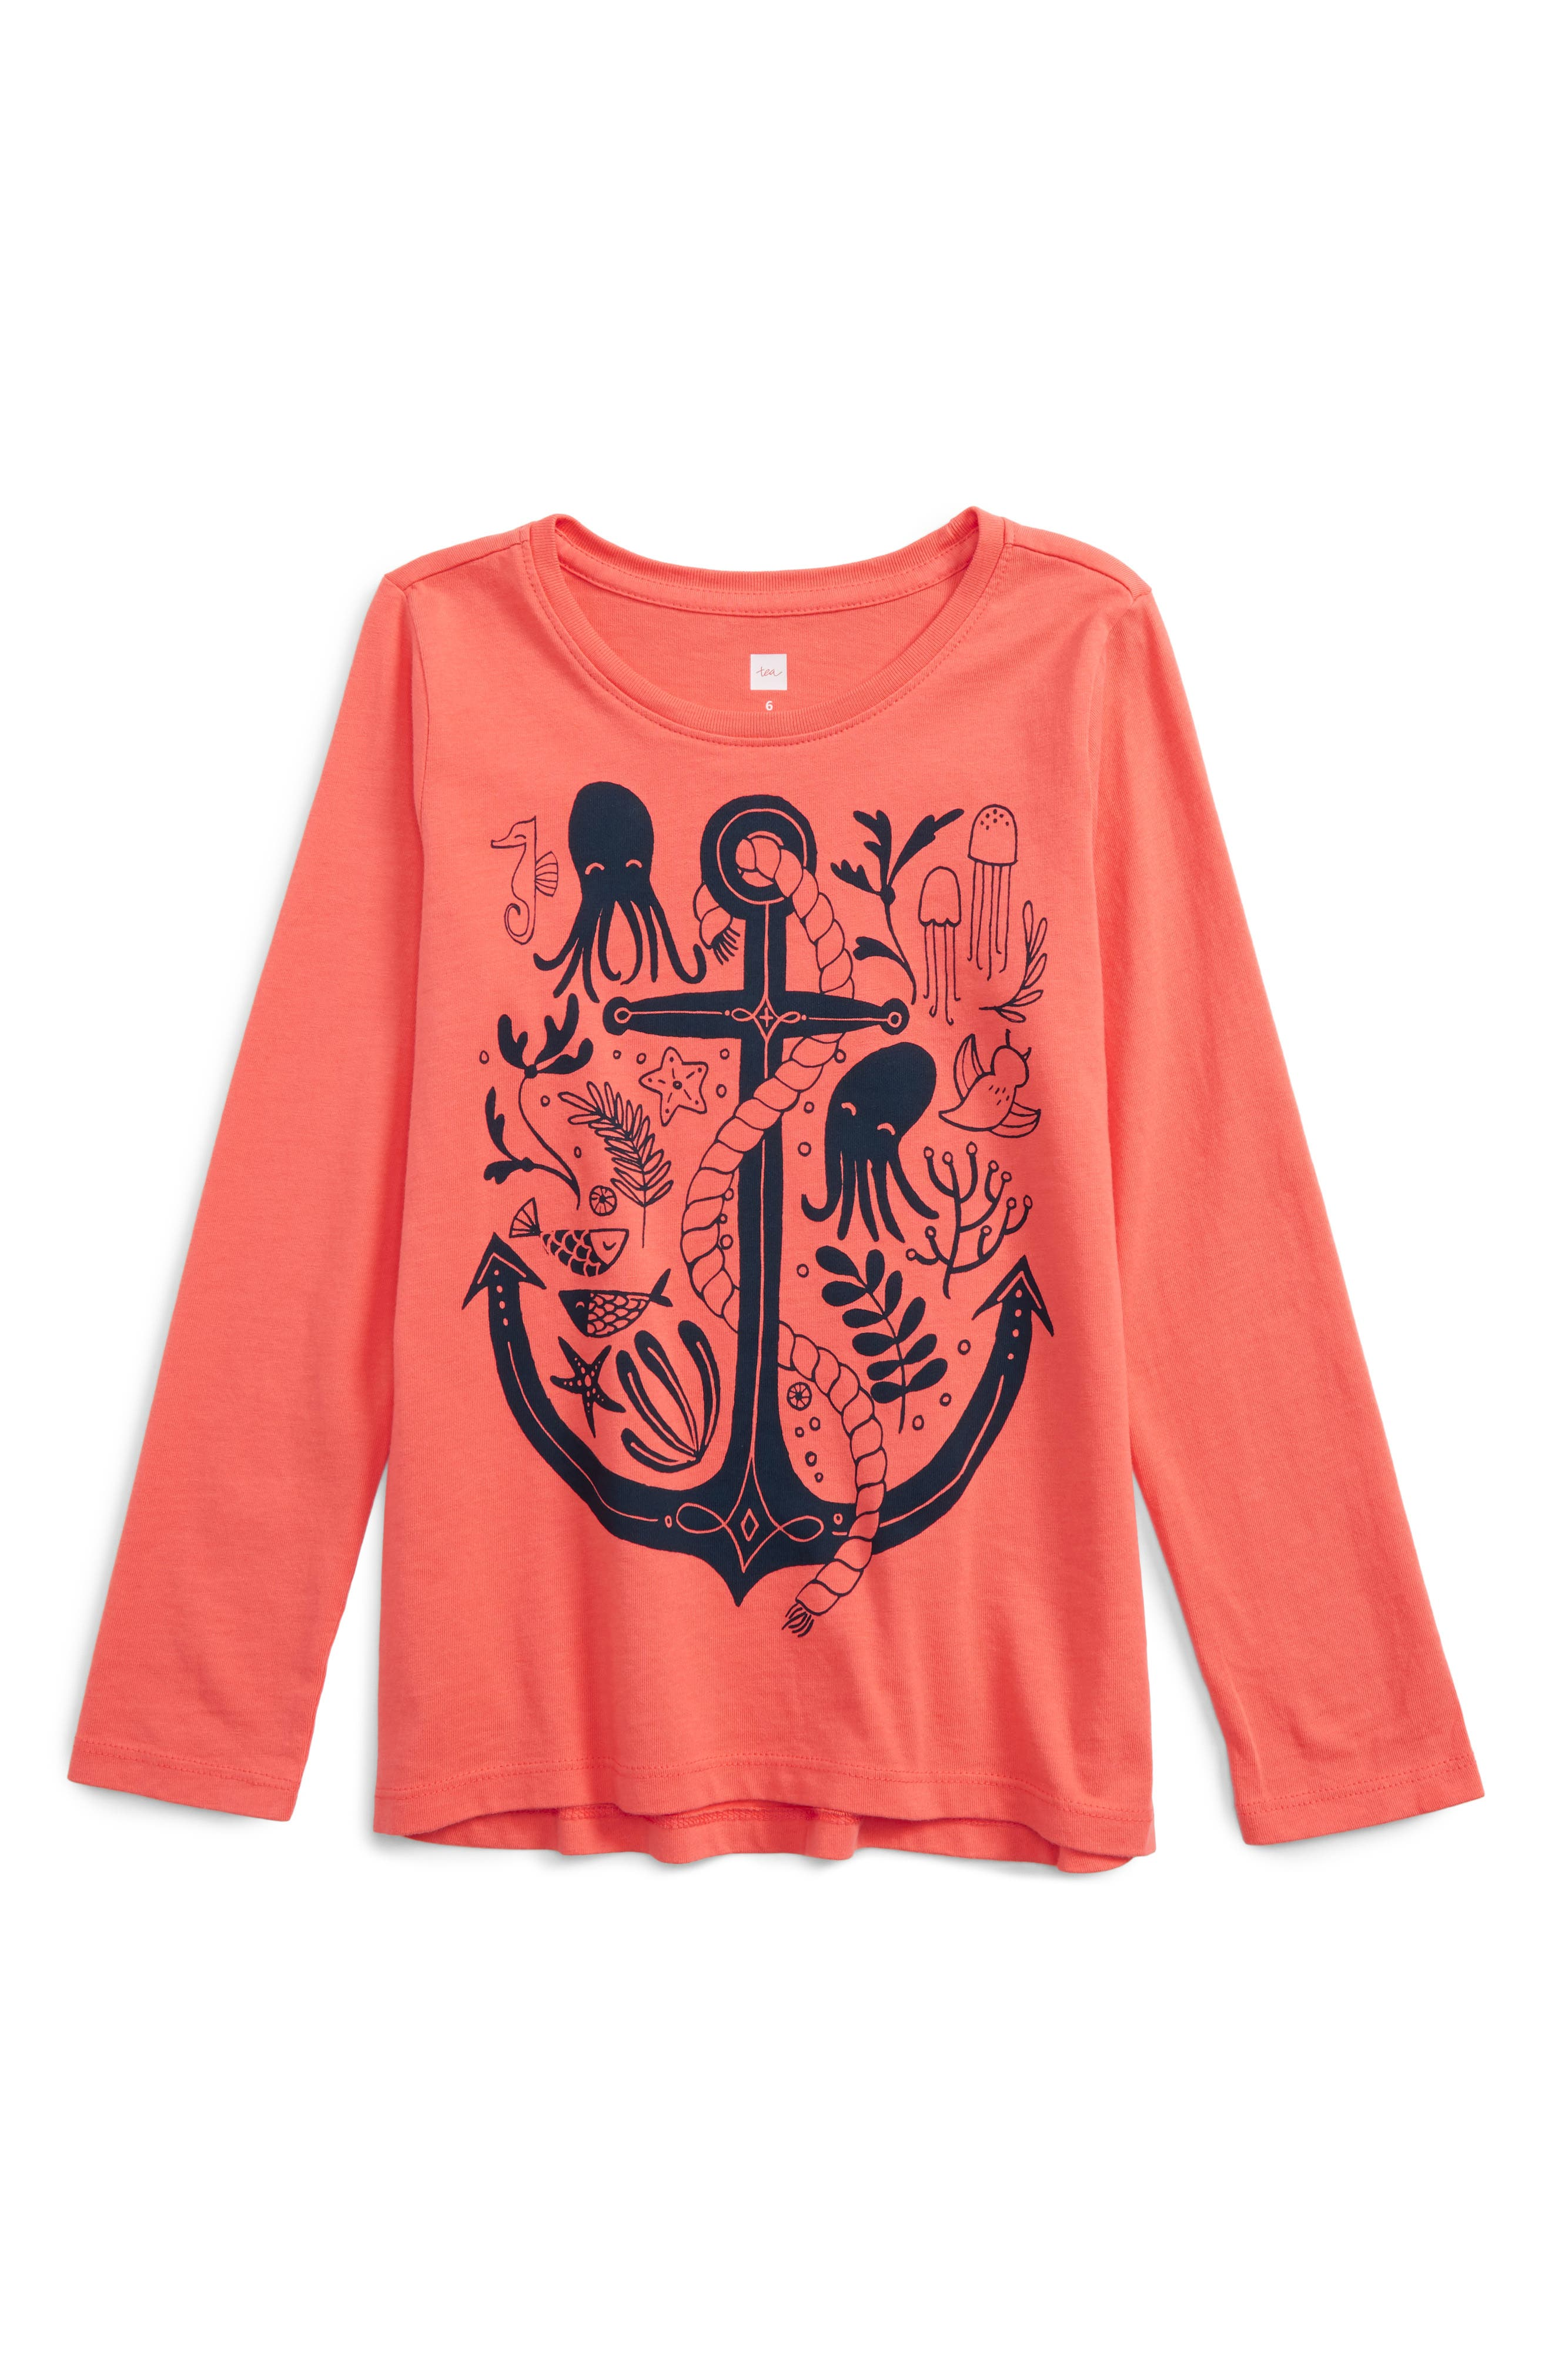 Main Image - Tea Collection River Polly Graphic Tee (Toddler Girls, Little Girls & Big Girls)